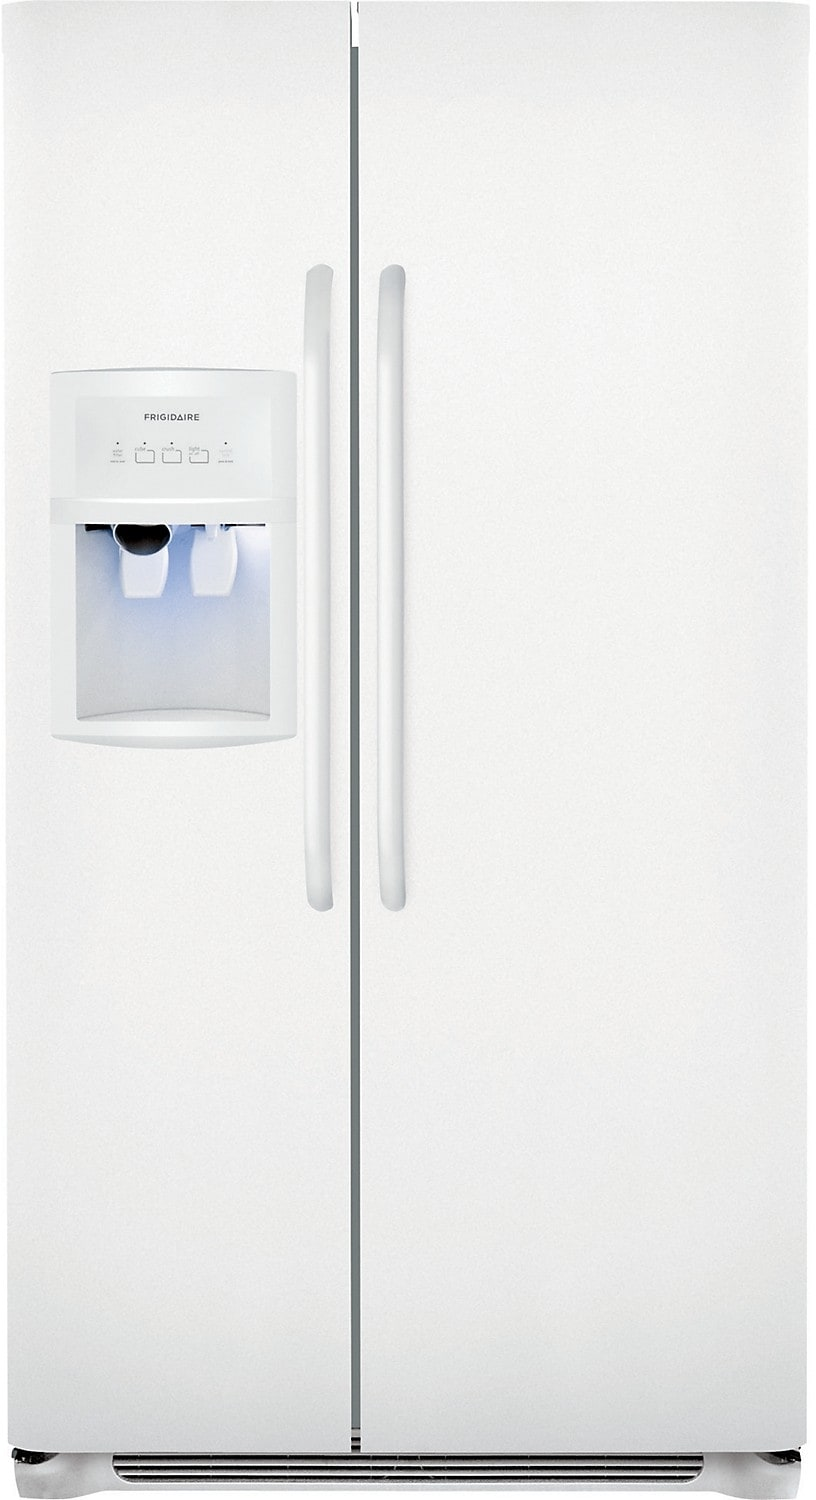 Frigidaire 23 Cu. Ft. Standard-Depth Side-by-Side Refrigerator - White